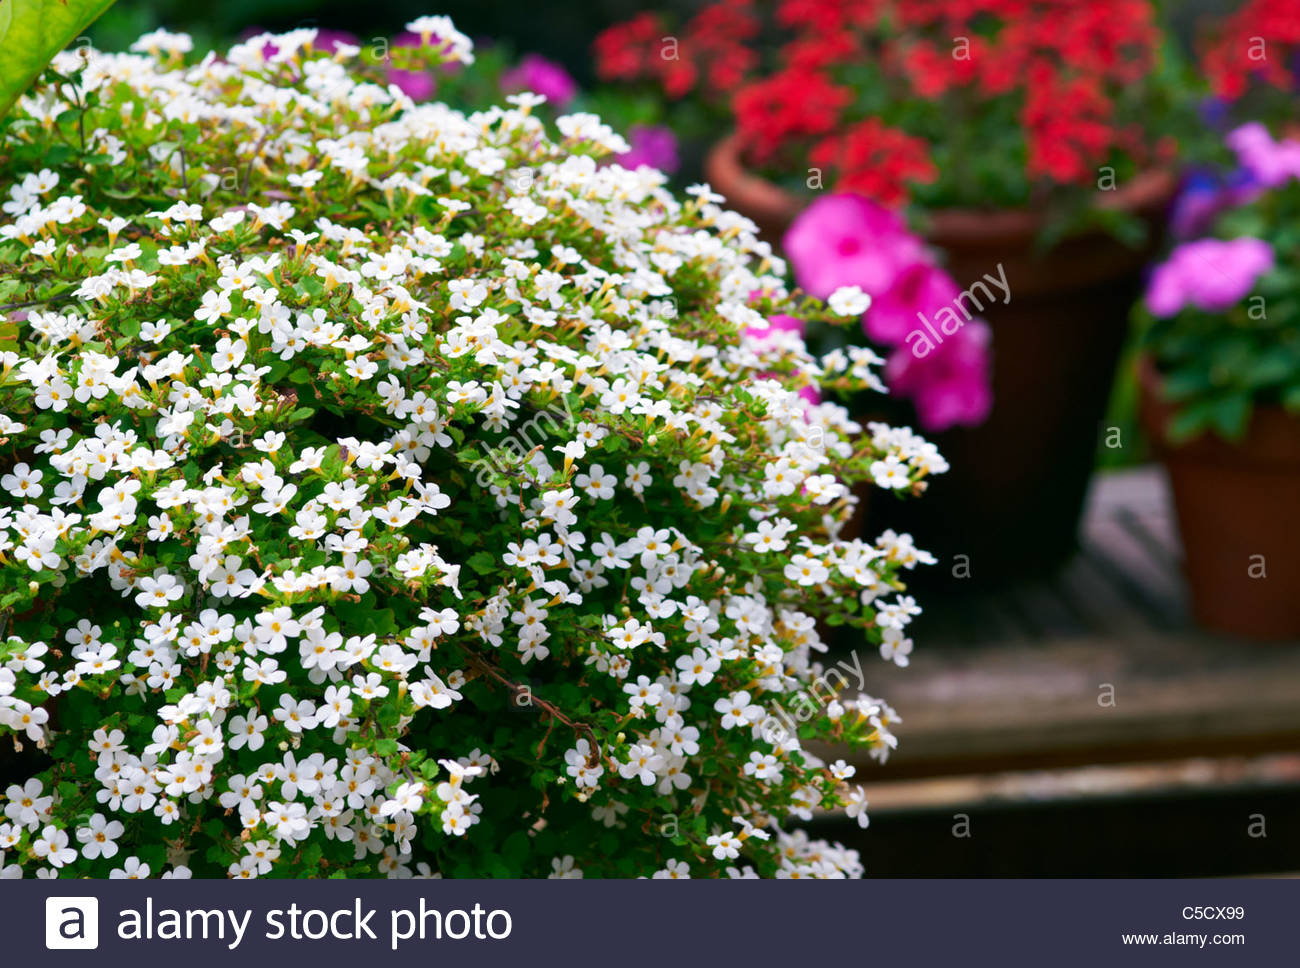 Trailing plant stock photos trailing plant stock images alamy bacopa snowflake trailing plant of small white flowers display stock image mightylinksfo